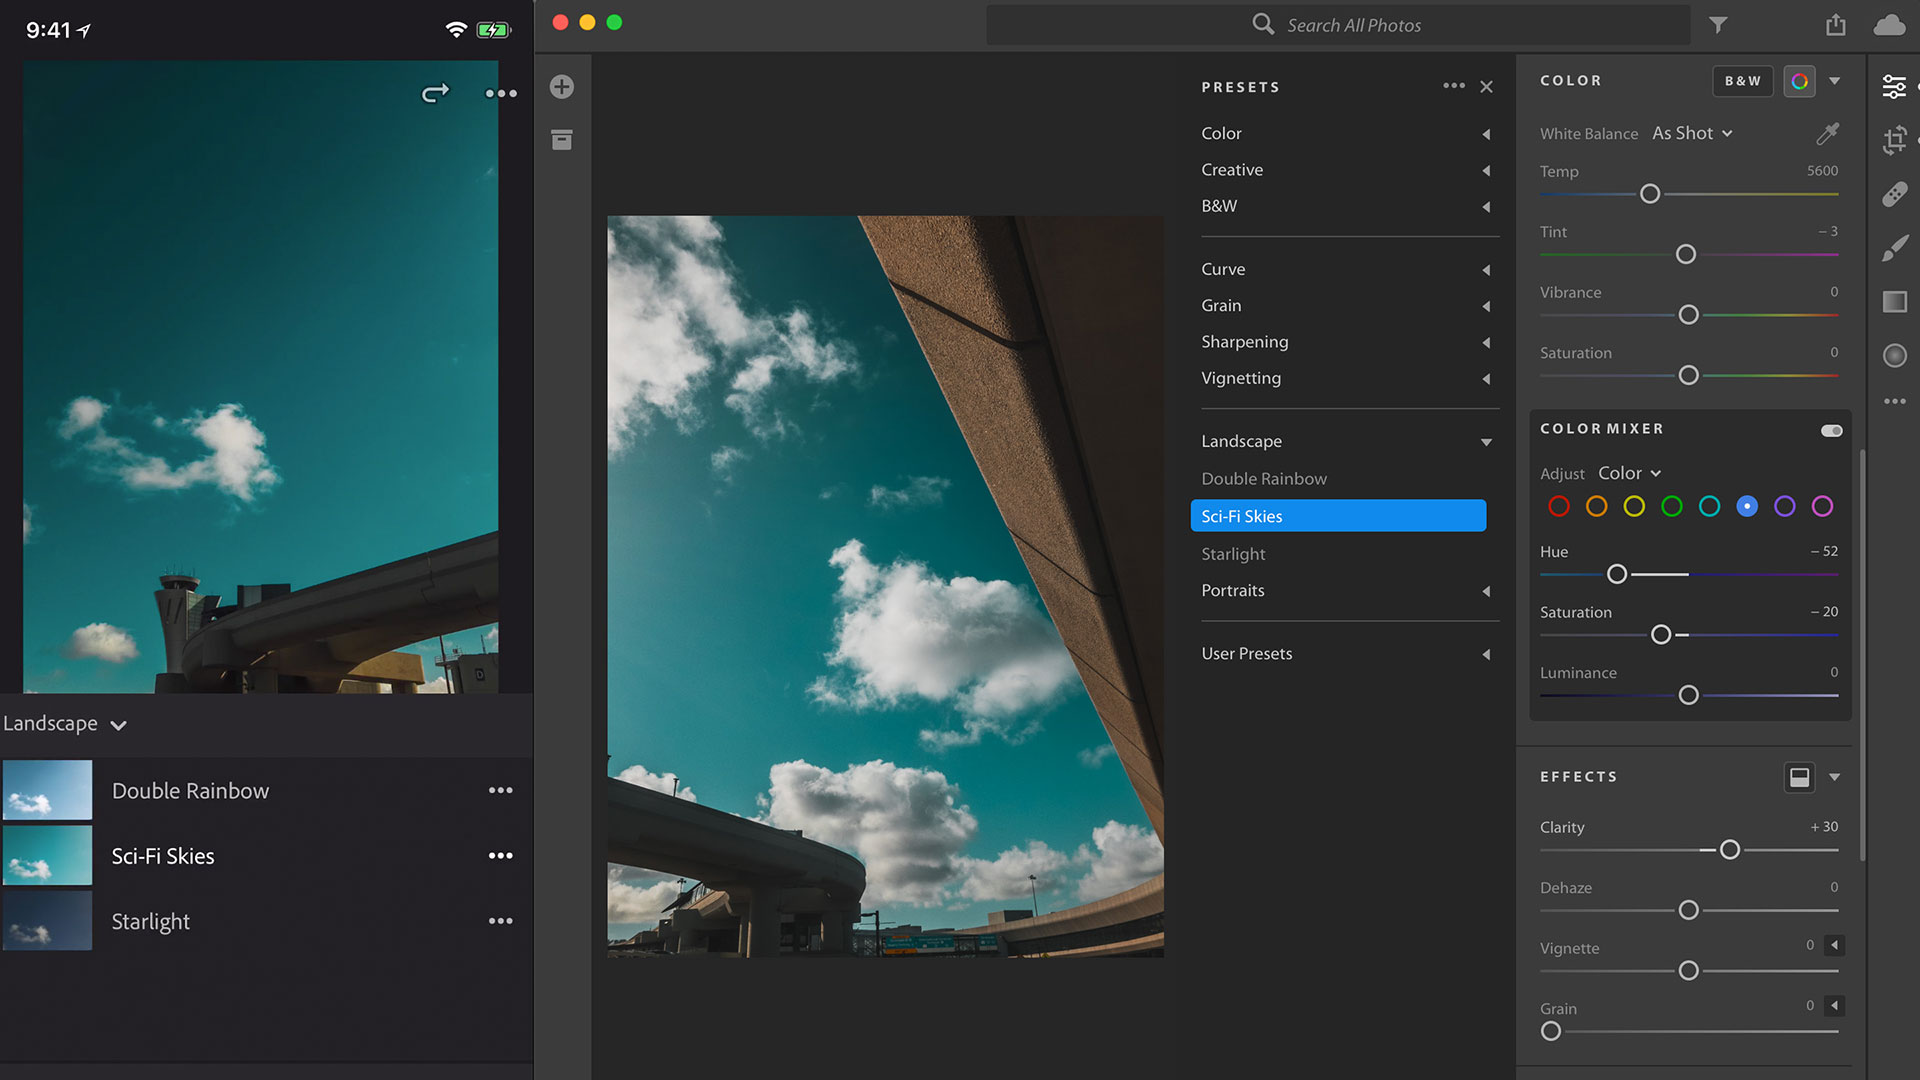 Adobe Brings Powerful New Features to Lightroom CC and Classic